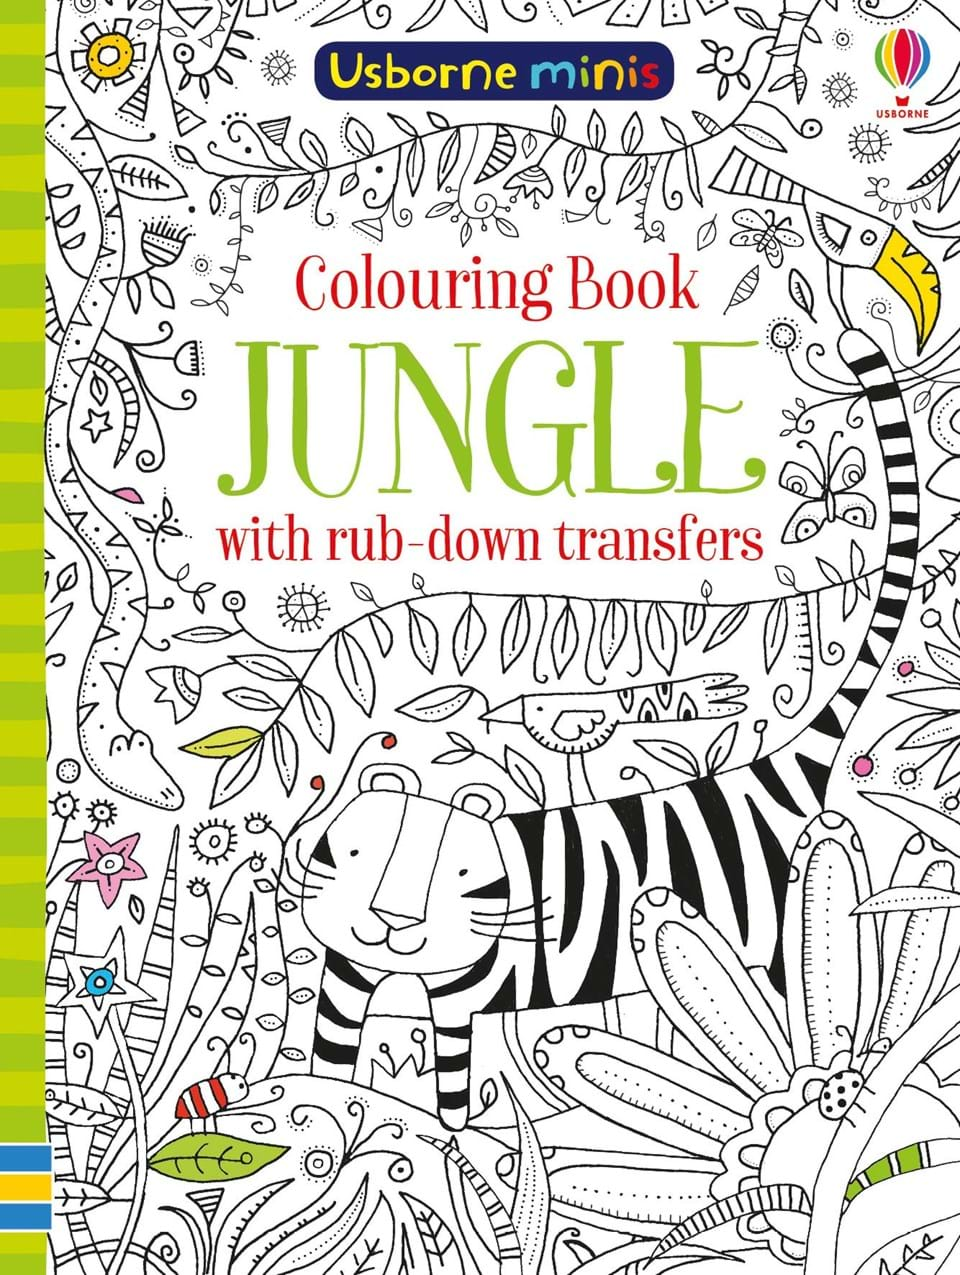 Colouring book jungle with rub-down transfers fashion doershow italian shoes with matching bags shoes and bags to match fuchsia shoe and bag set for party in women pqs1 10